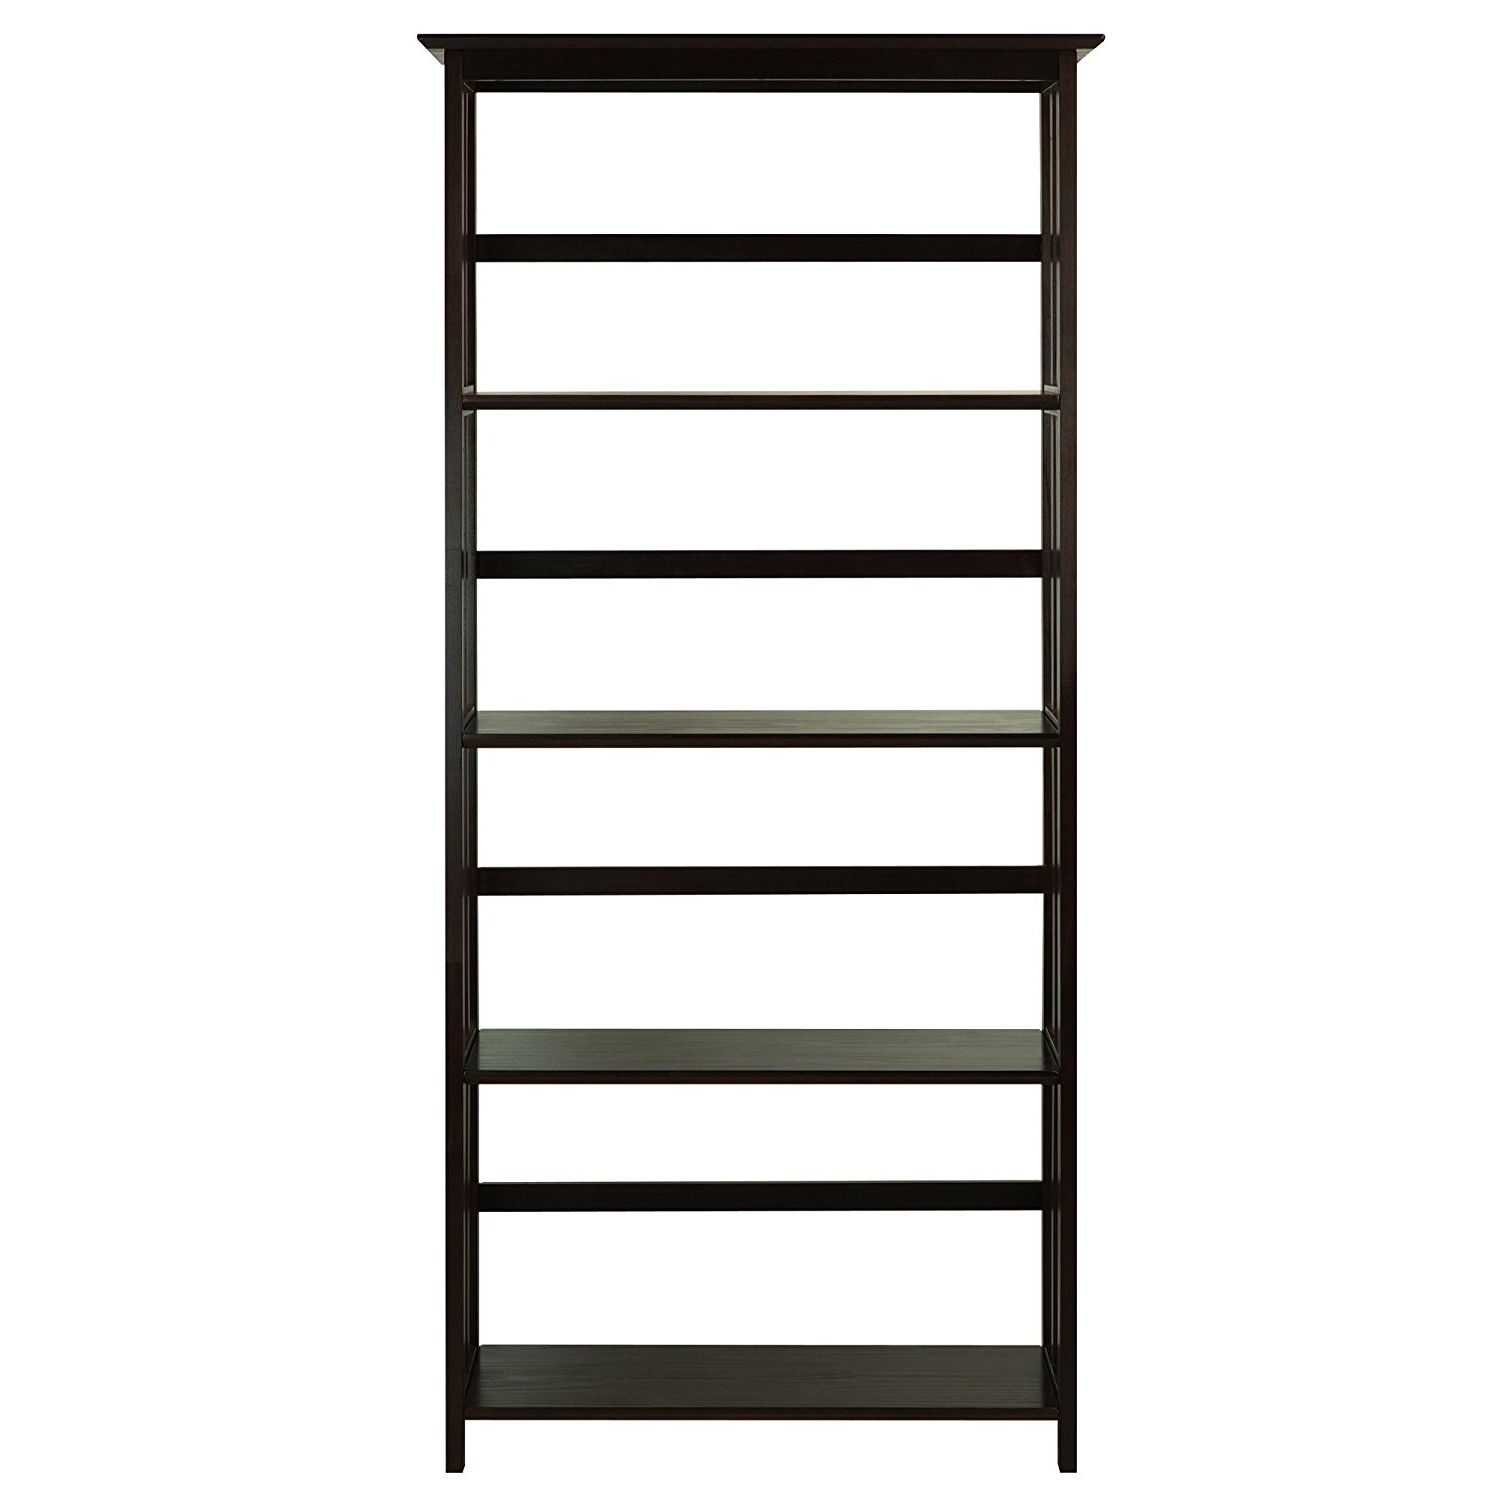 Most Recent Mission Bookcases In Amazon: Casual Home Mission Style 5 Shelf Bookcase, Espresso (View 5 of 15)